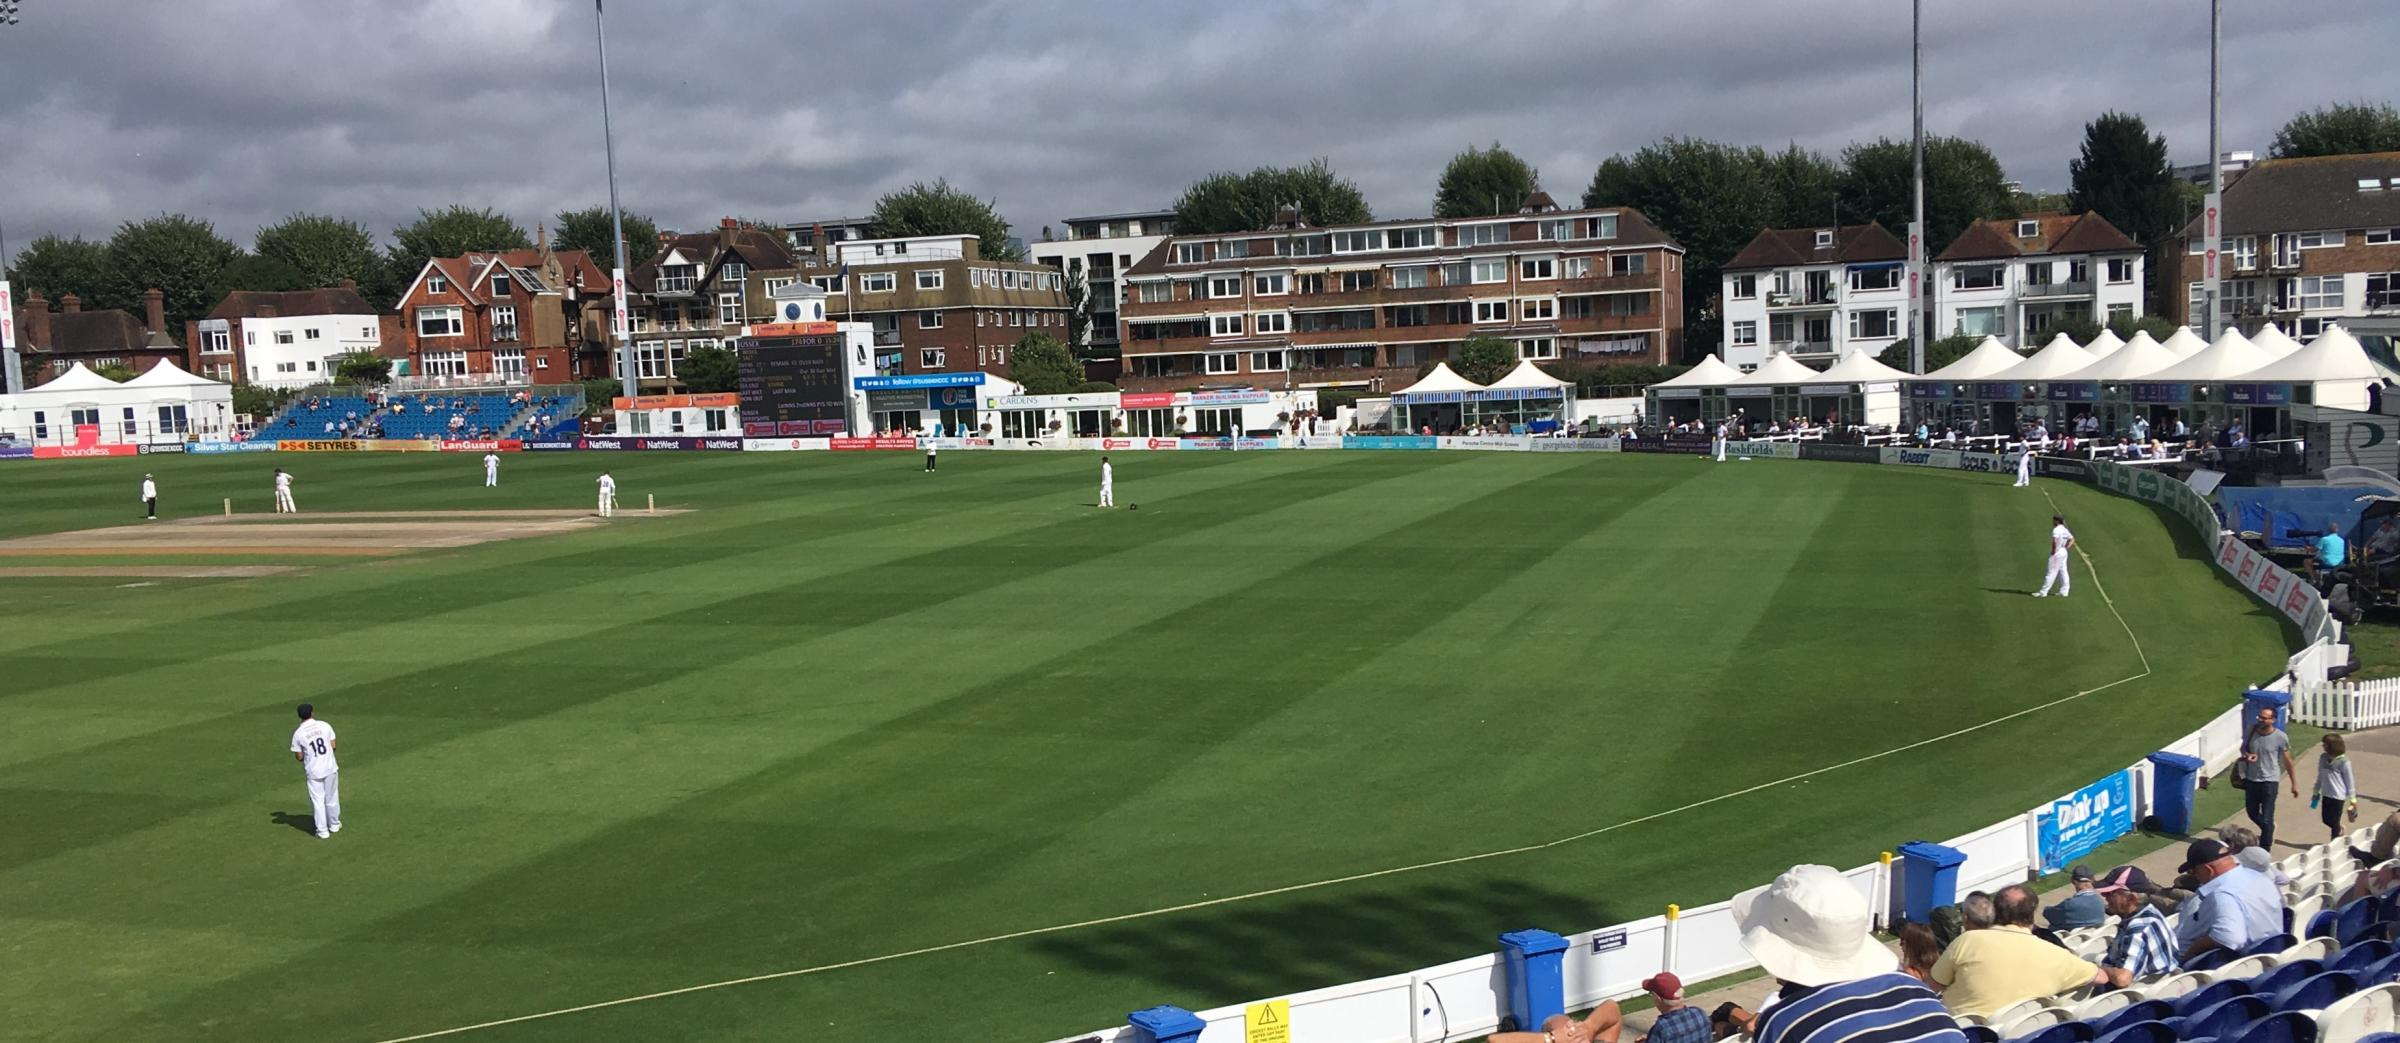 Sussex took two wickets at Hove this morning